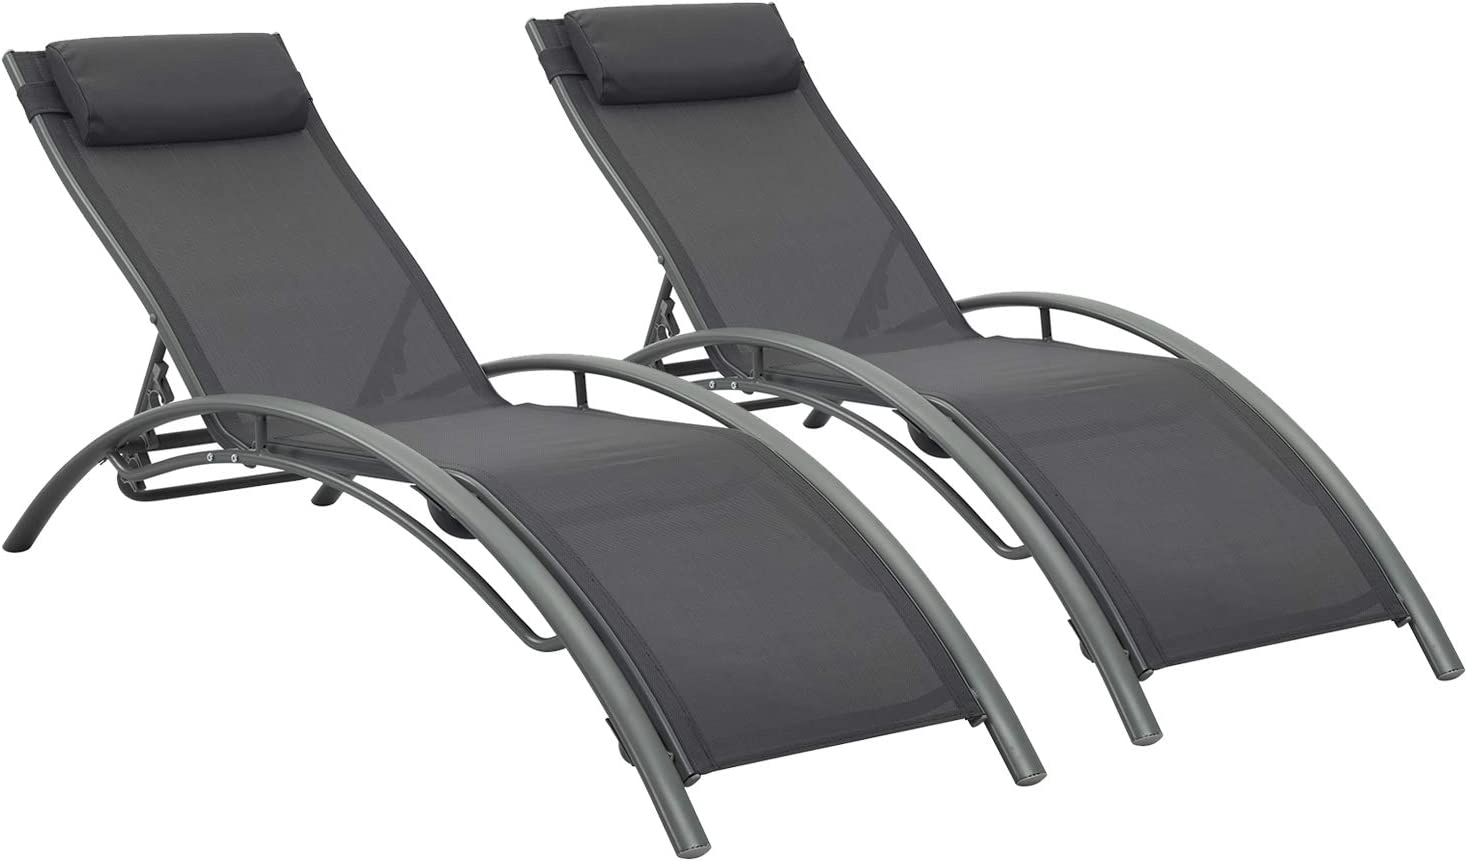 Ainfox Adjustable Chaise Lounge, Patio Reclining Elegant Lounge Chair Recliners Aluminum Sunbathing Chair with Headrest2 Pack (Gray)